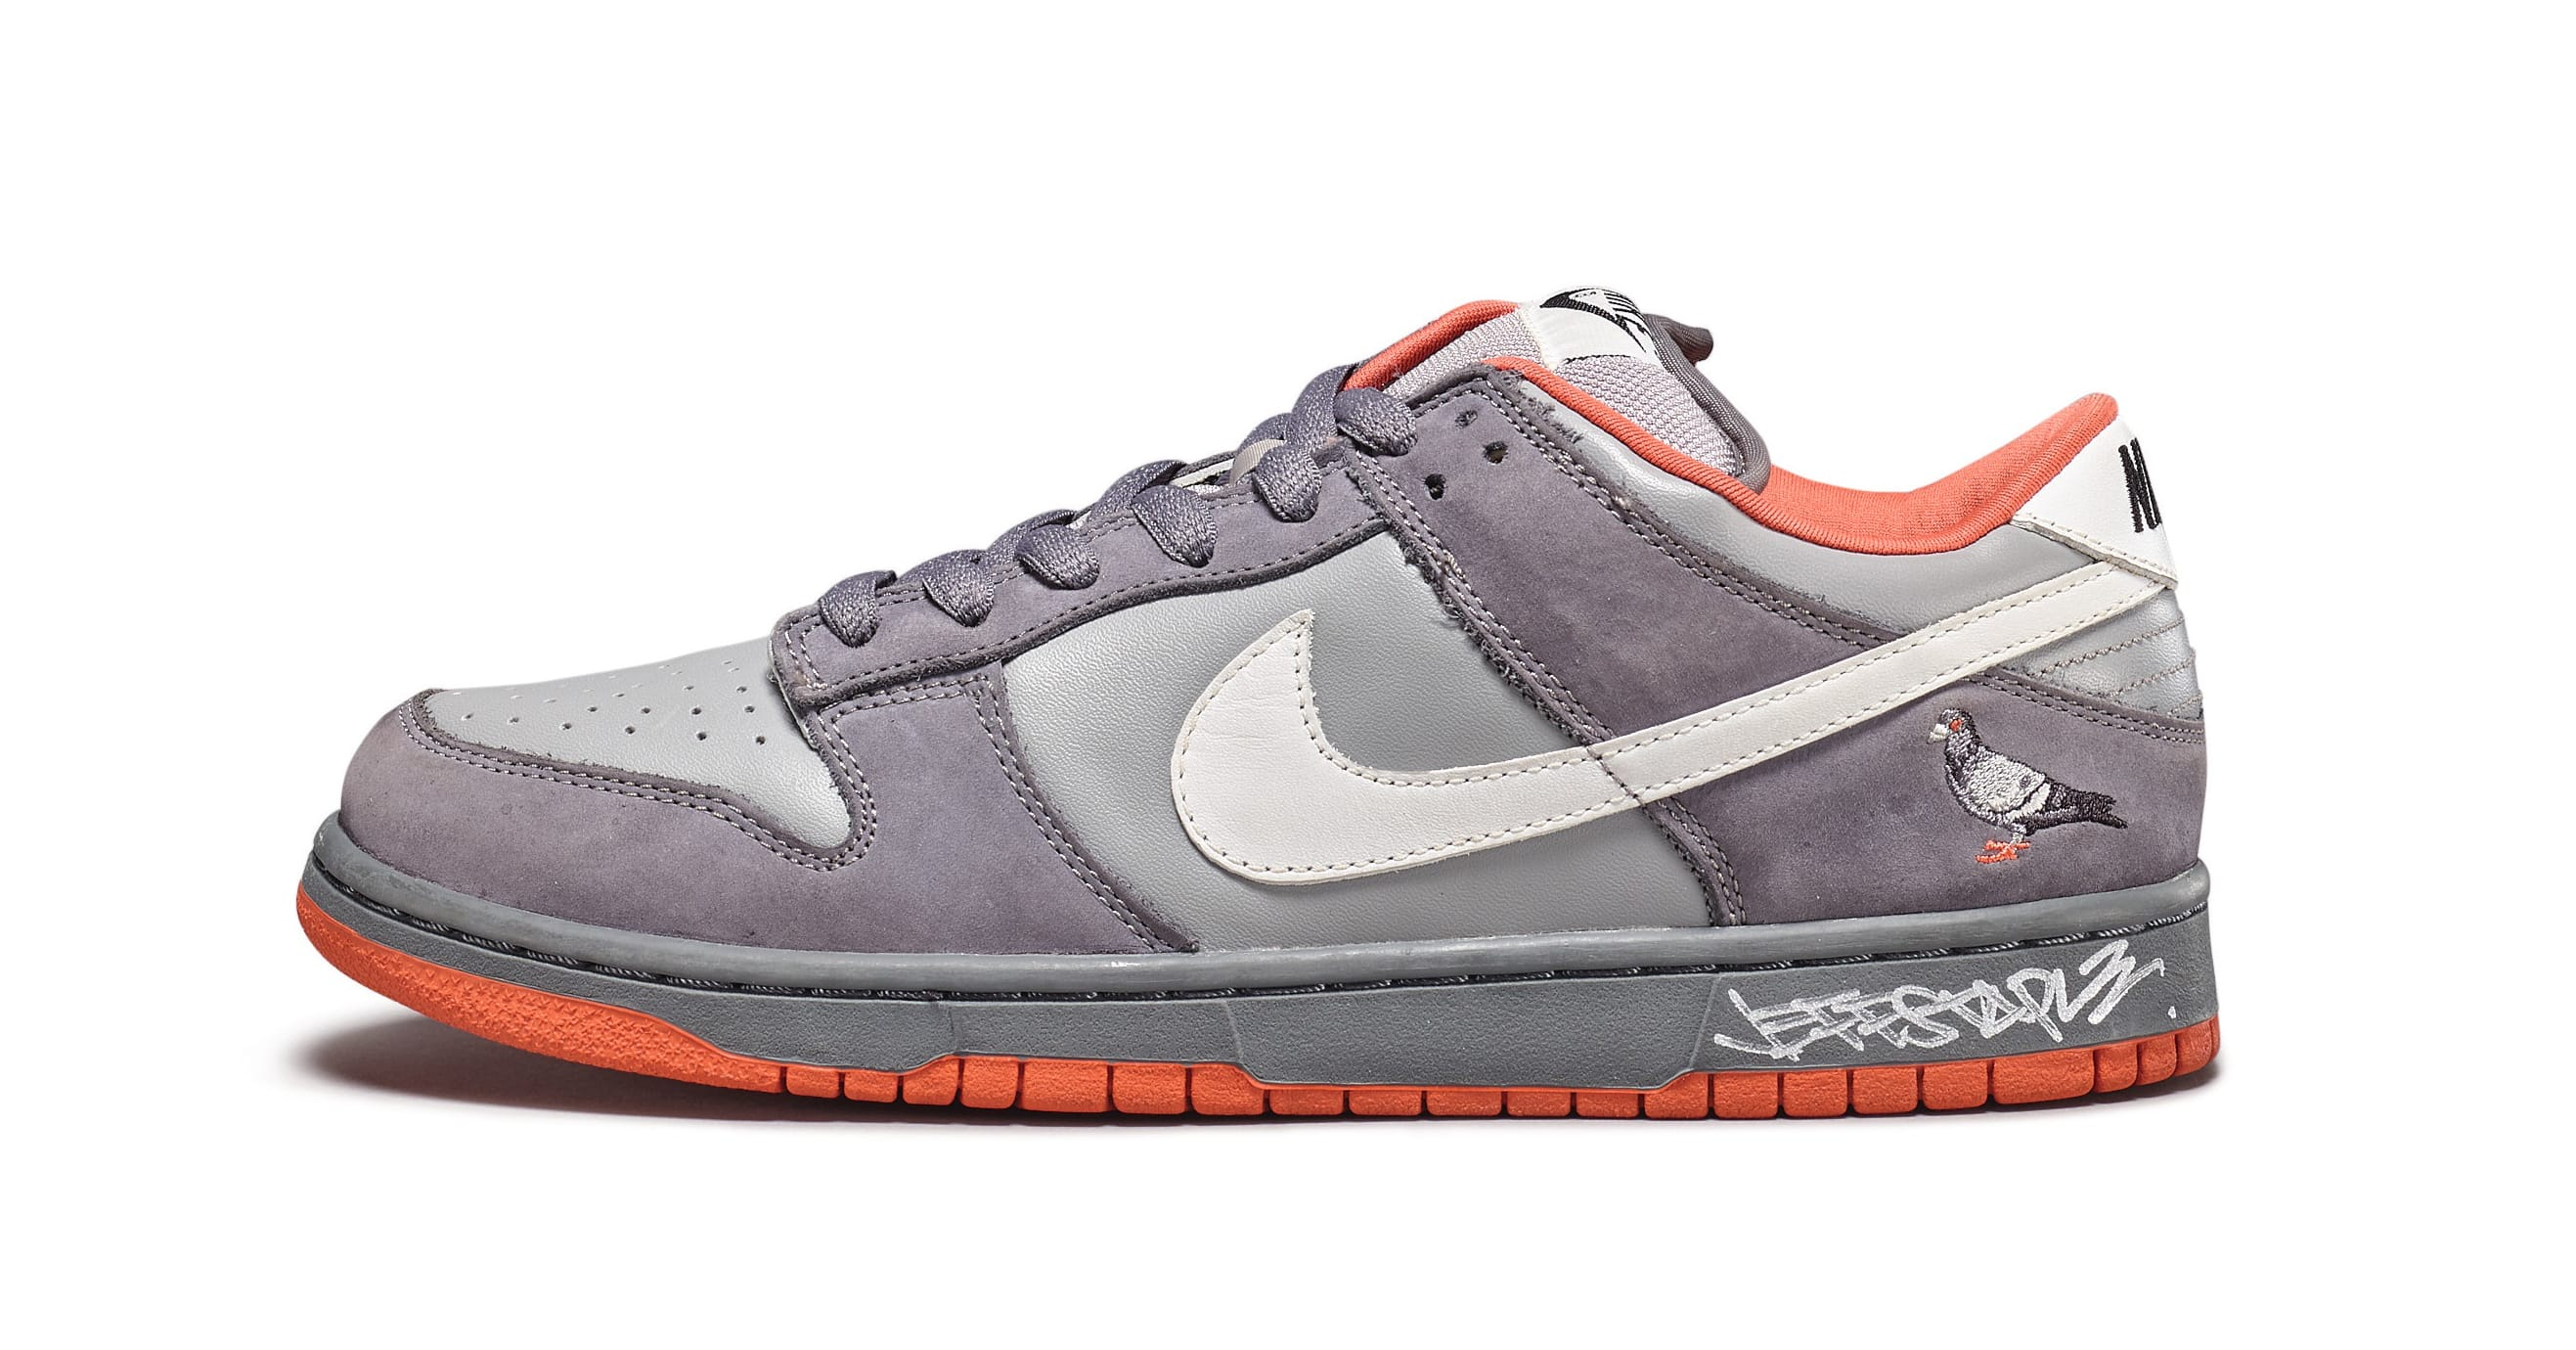 Jeff Staple x Nike SB Dunk Low 'NYC Pigeon'